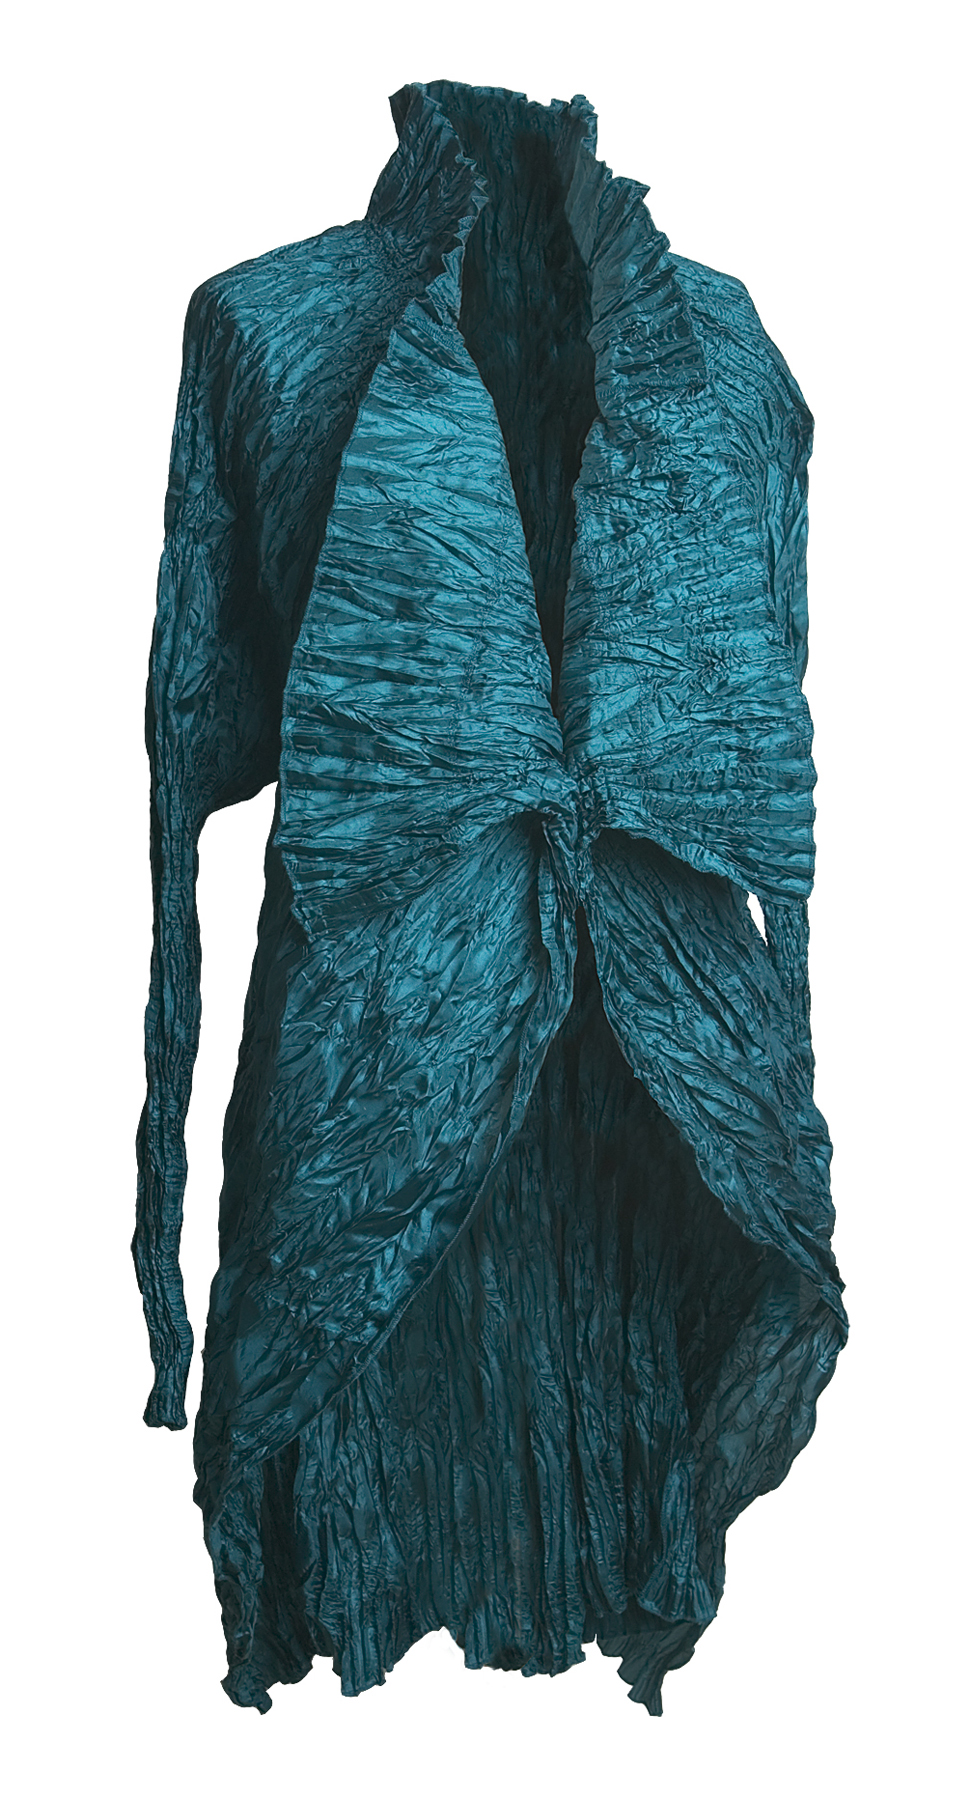 http://shiboriorg.files.wordpress.com/2008/12/rh_cutawaycoat0718.jpg